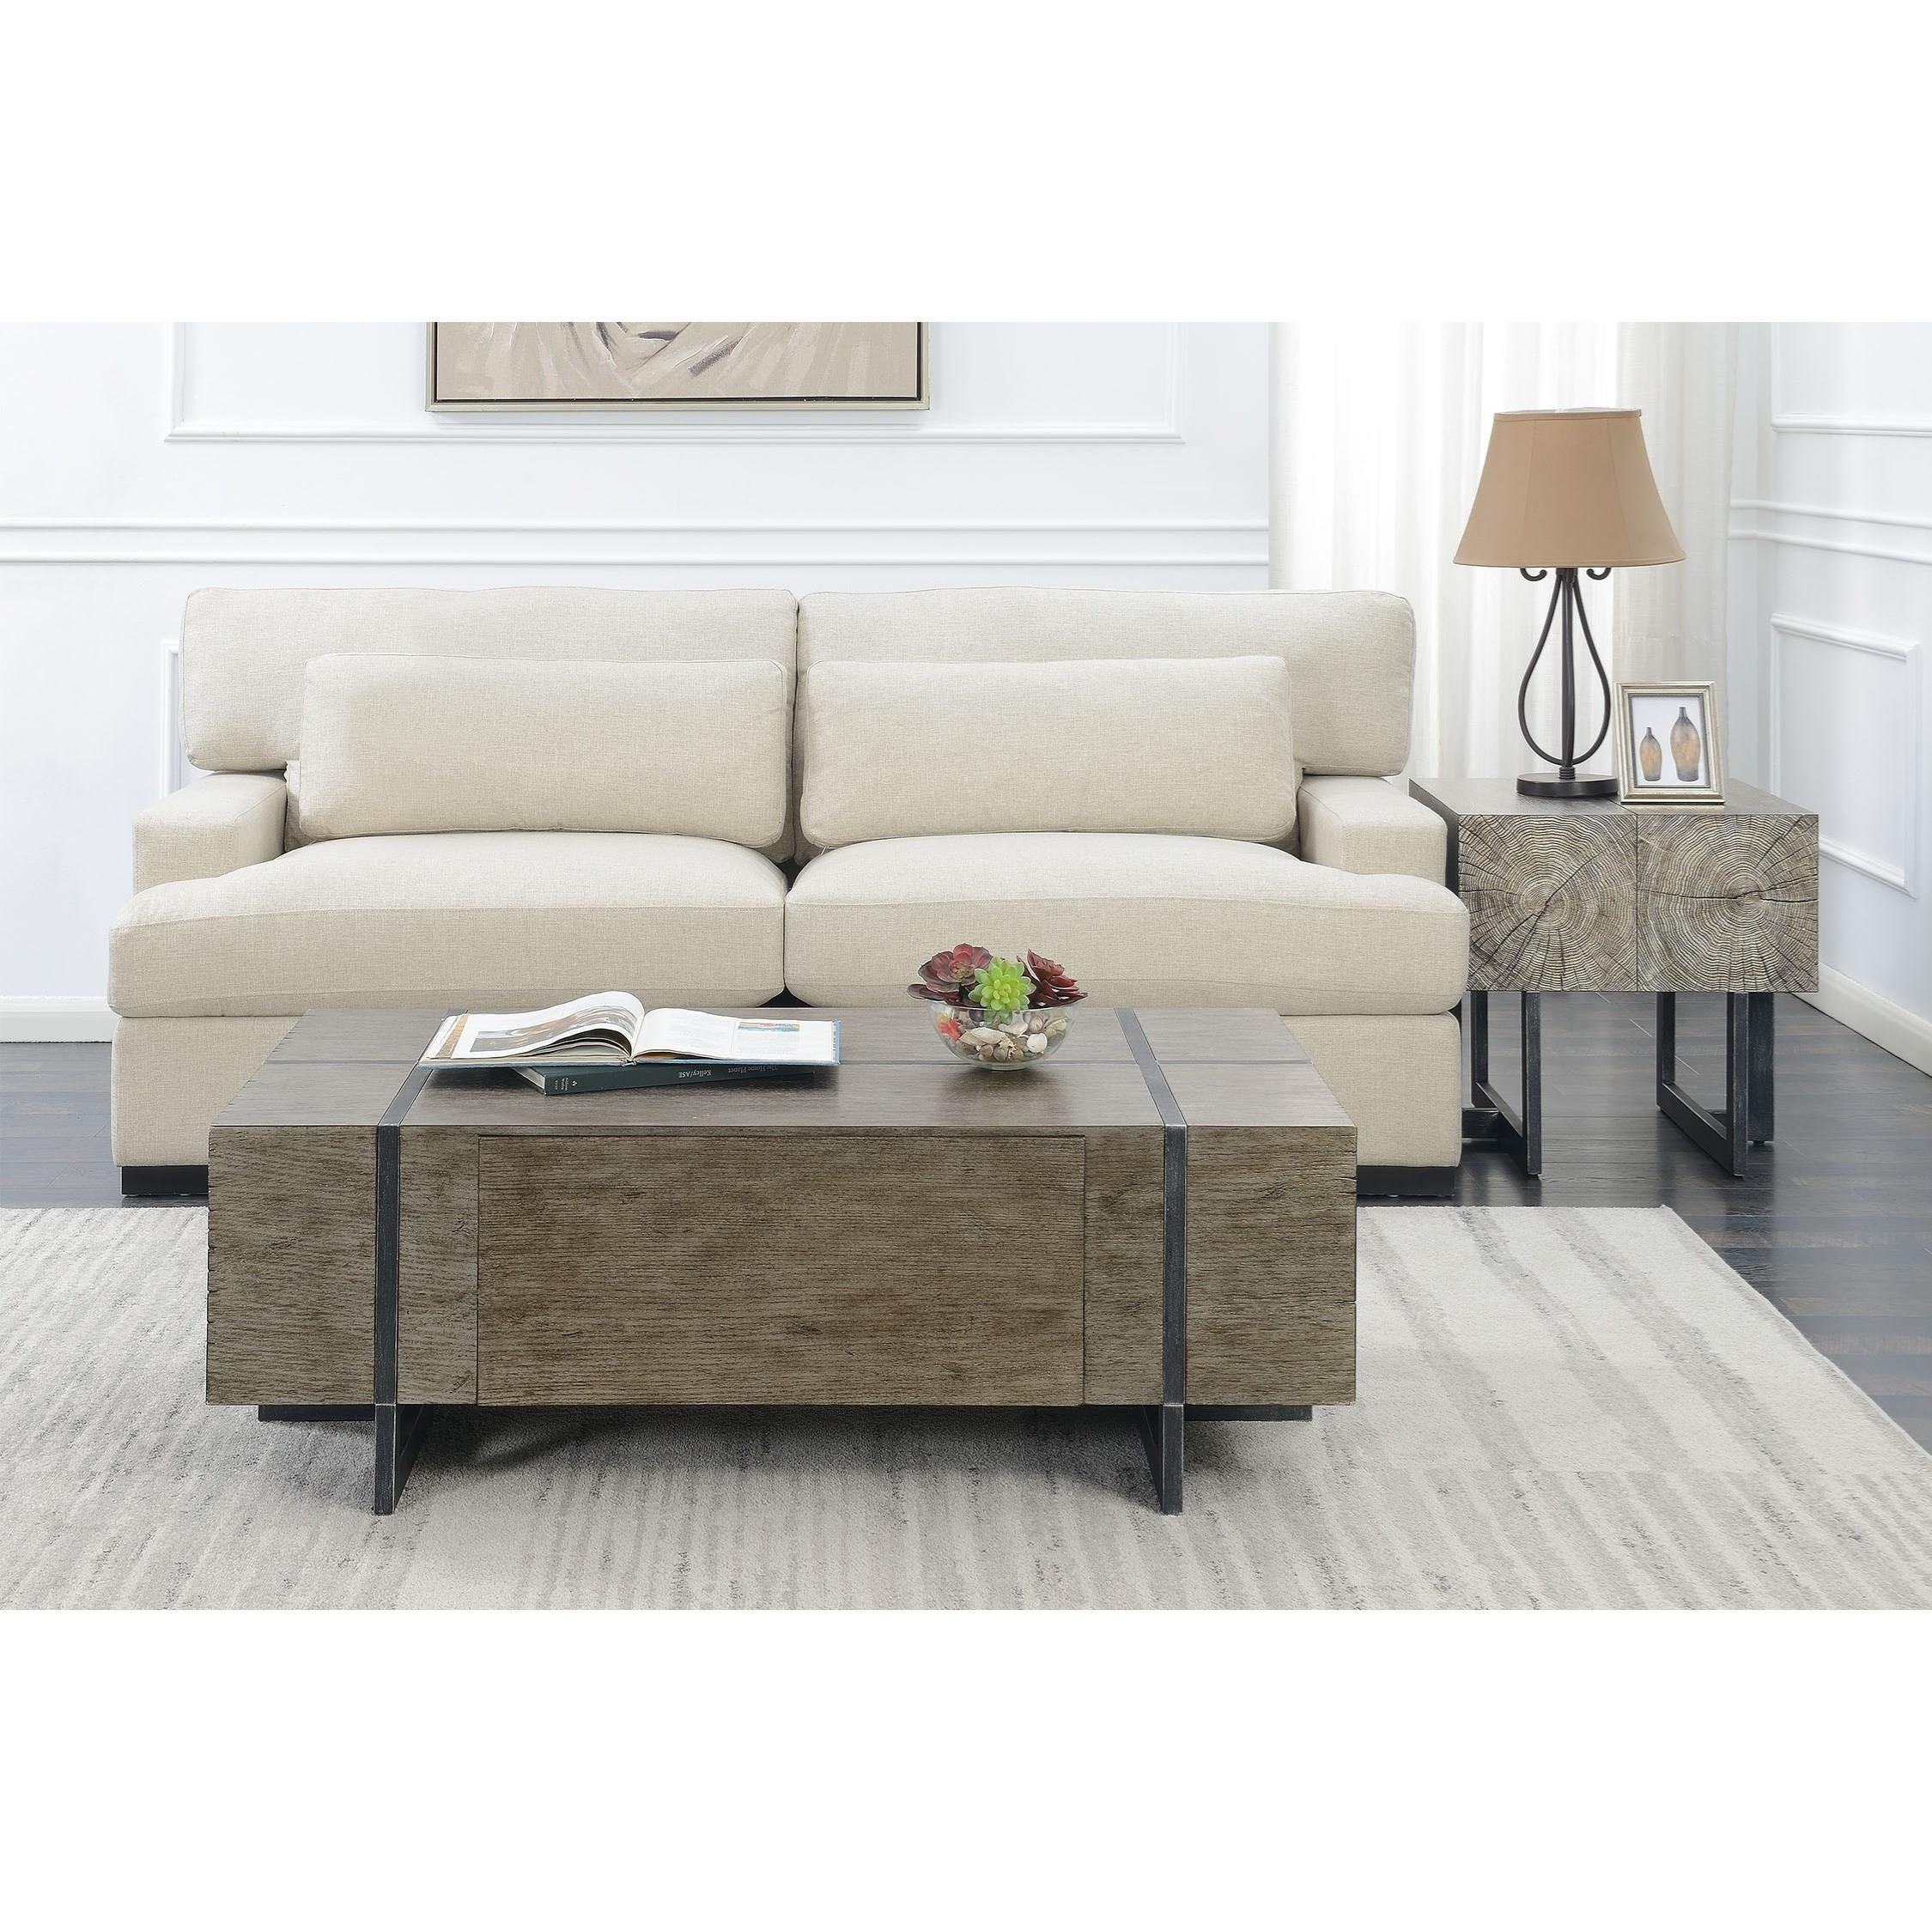 2-Piece Occasional Group